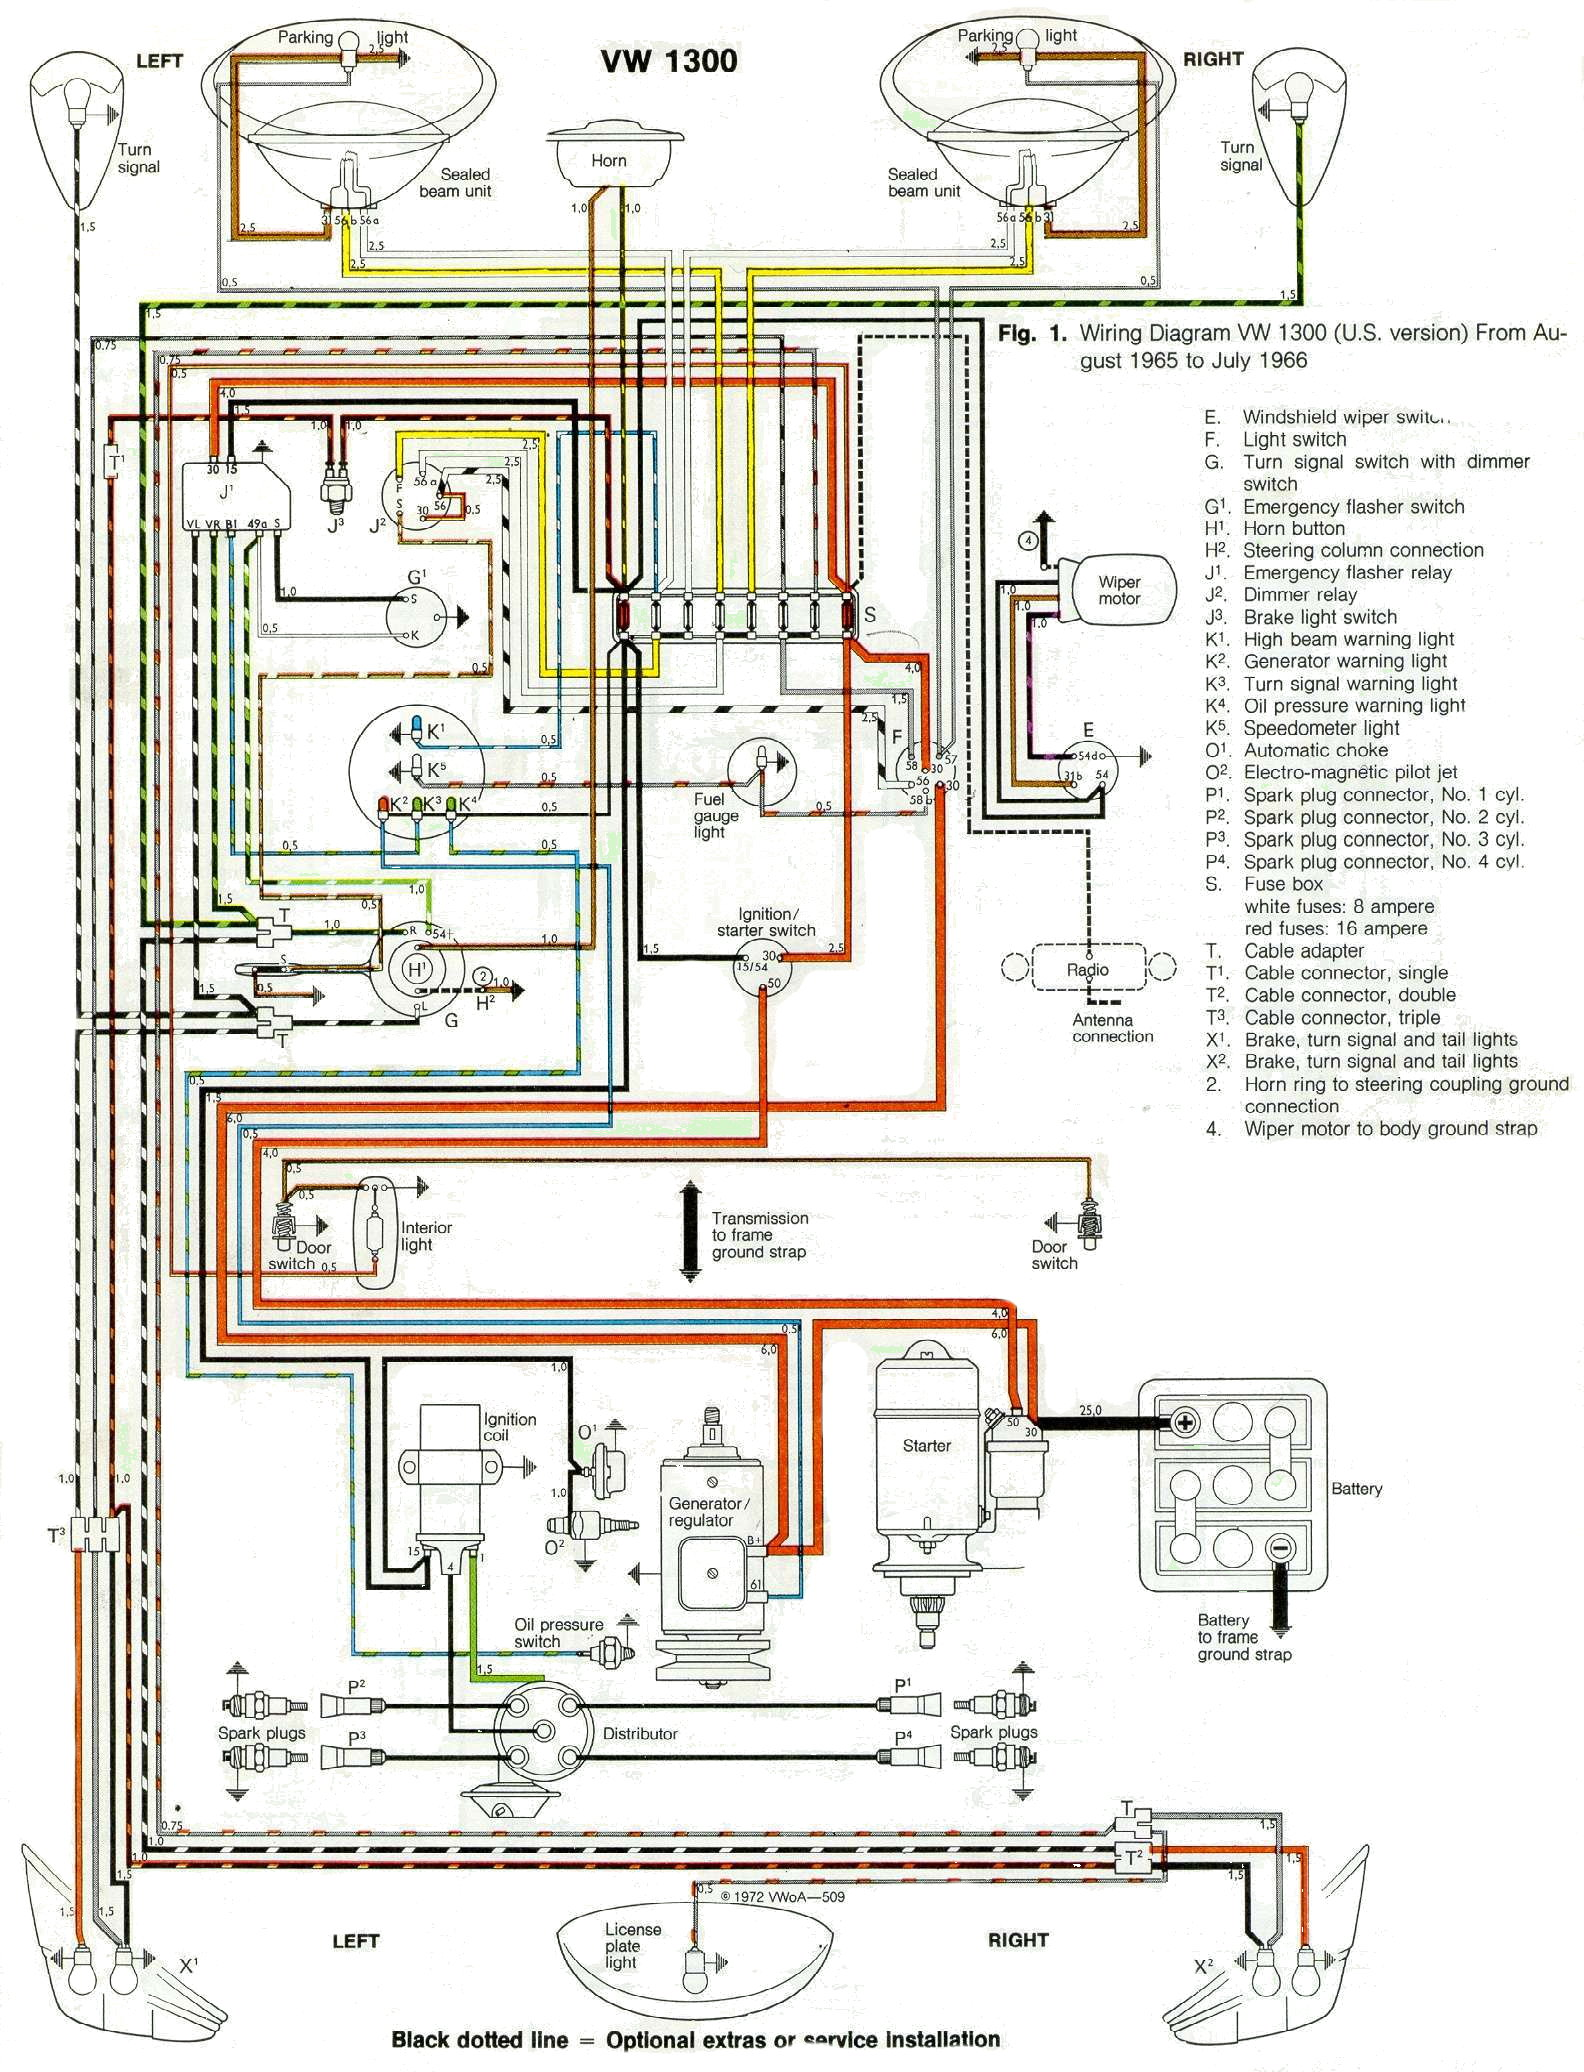 1966 Wiring 1966 wiring diagram vw ignition wiring diagram at n-0.co